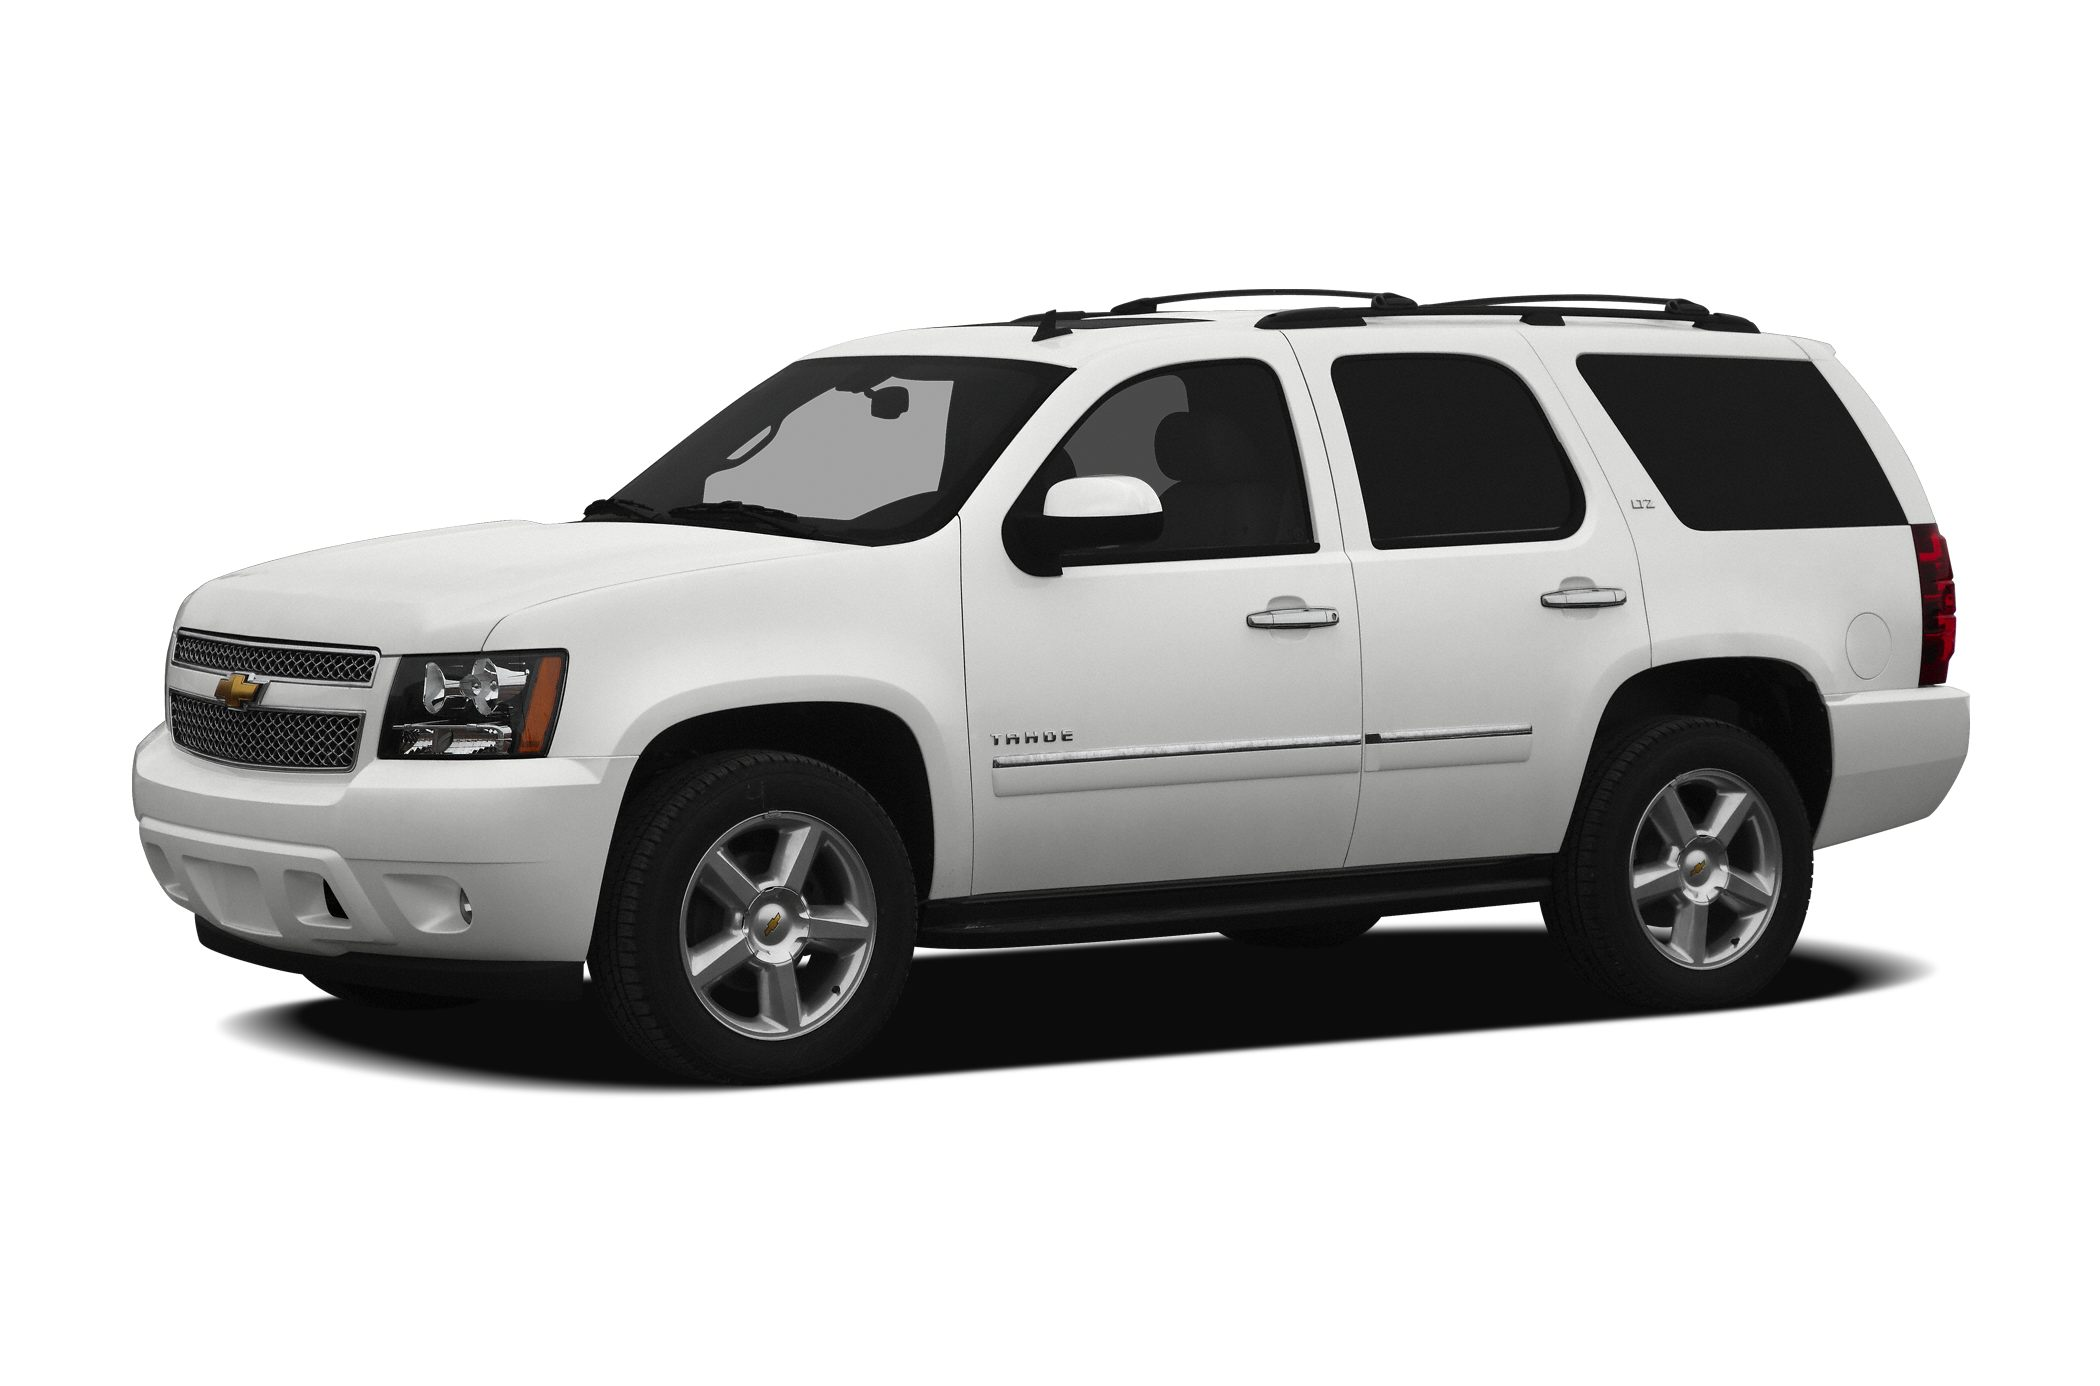 2009 Chevrolet Tahoe LT SUV for sale in Elizabethtown for $19,990 with 104,966 miles.